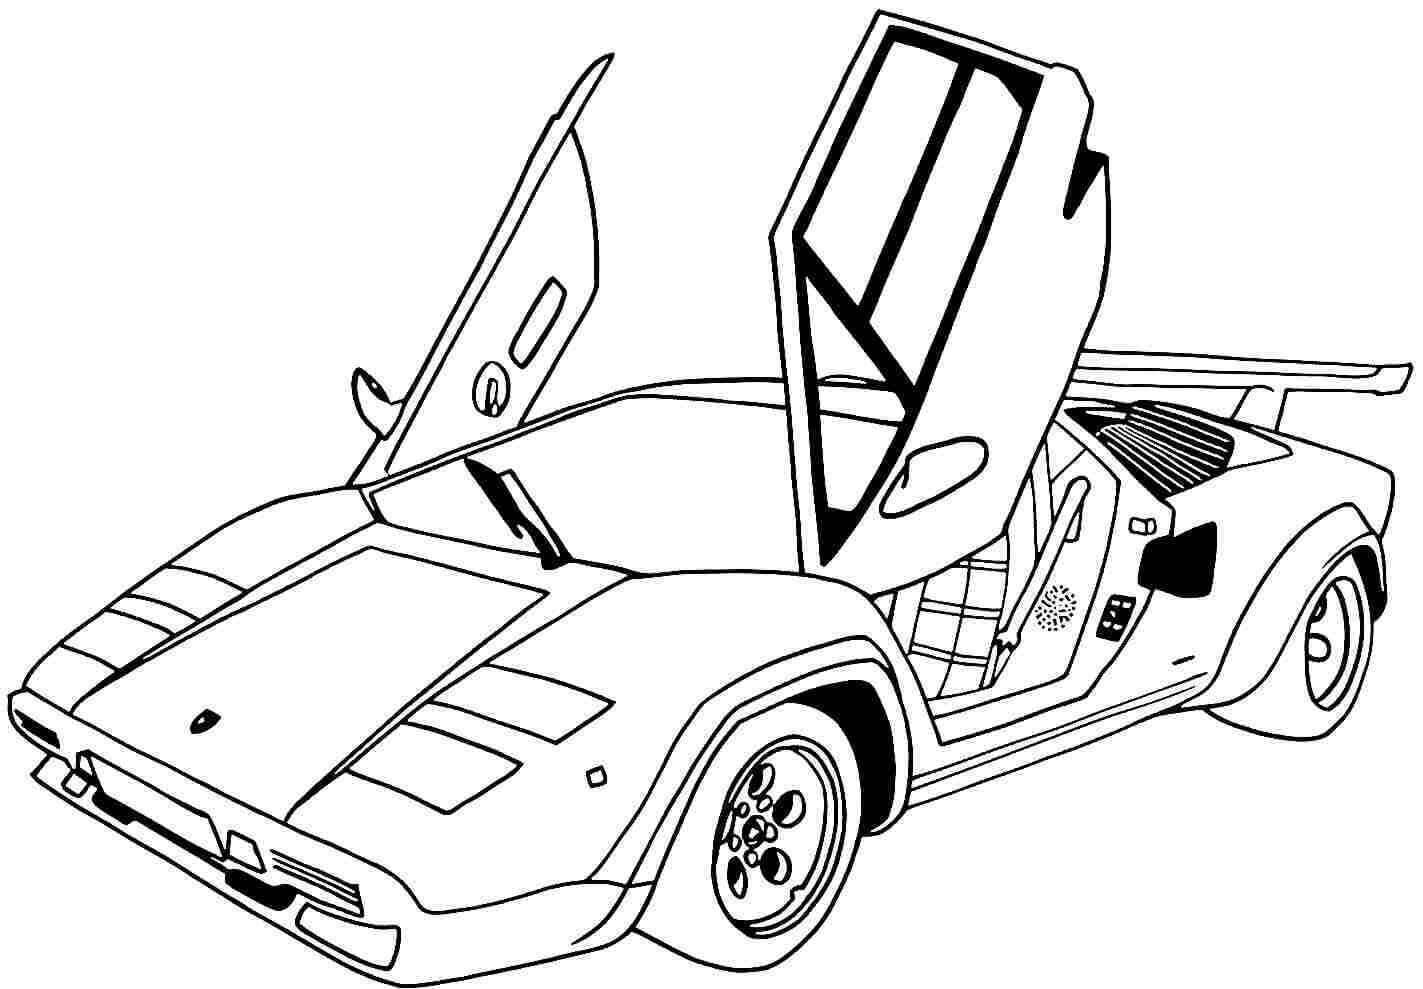 car picture to color 10 car coloring sheets sports muscle racing cars and car to picture color